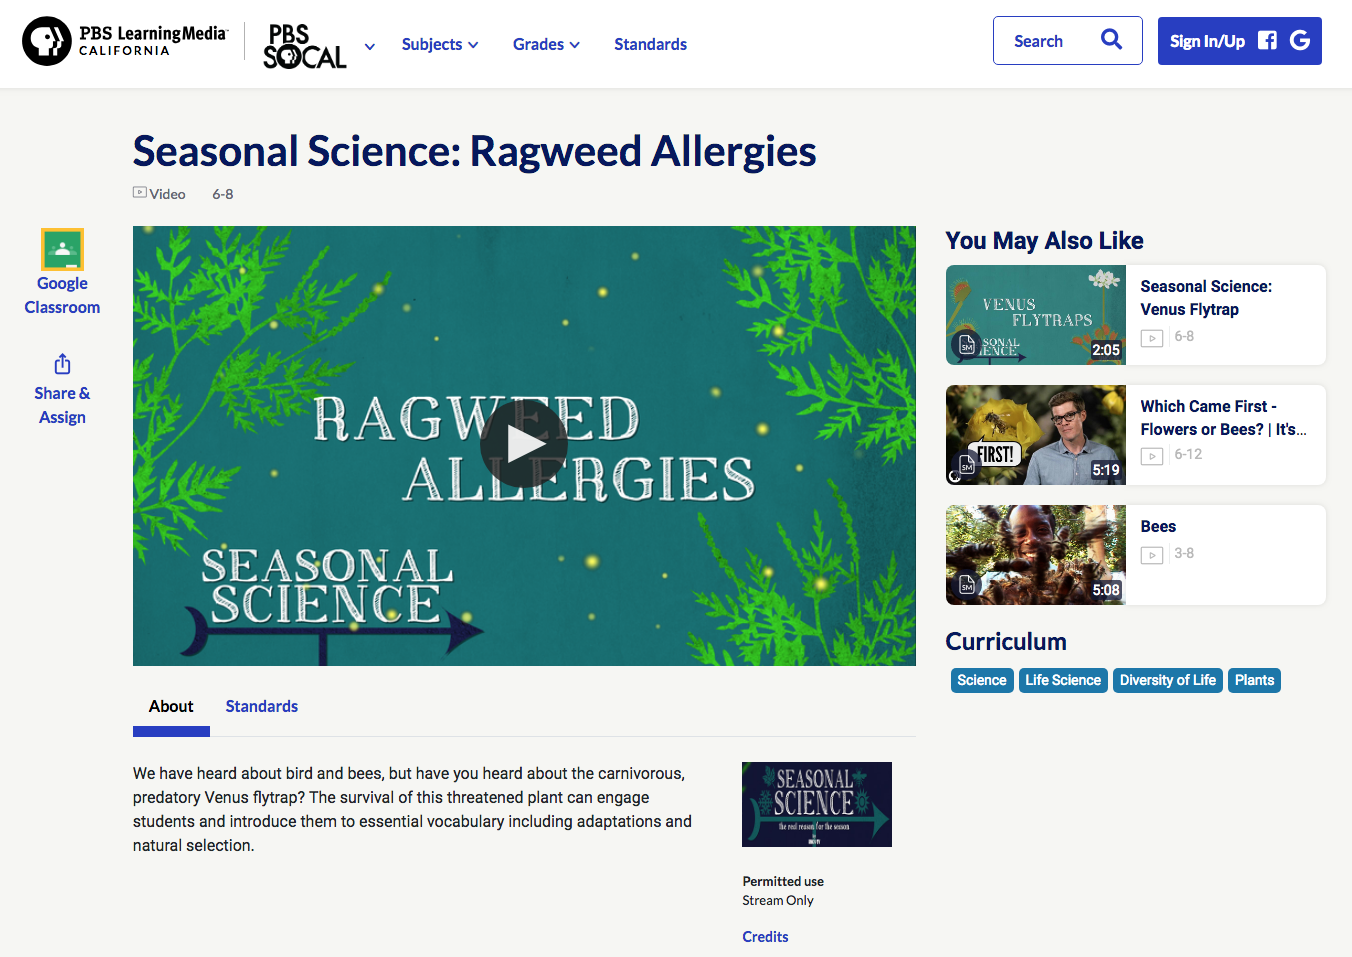 Seasonal Science: Ragweed Allergies Video